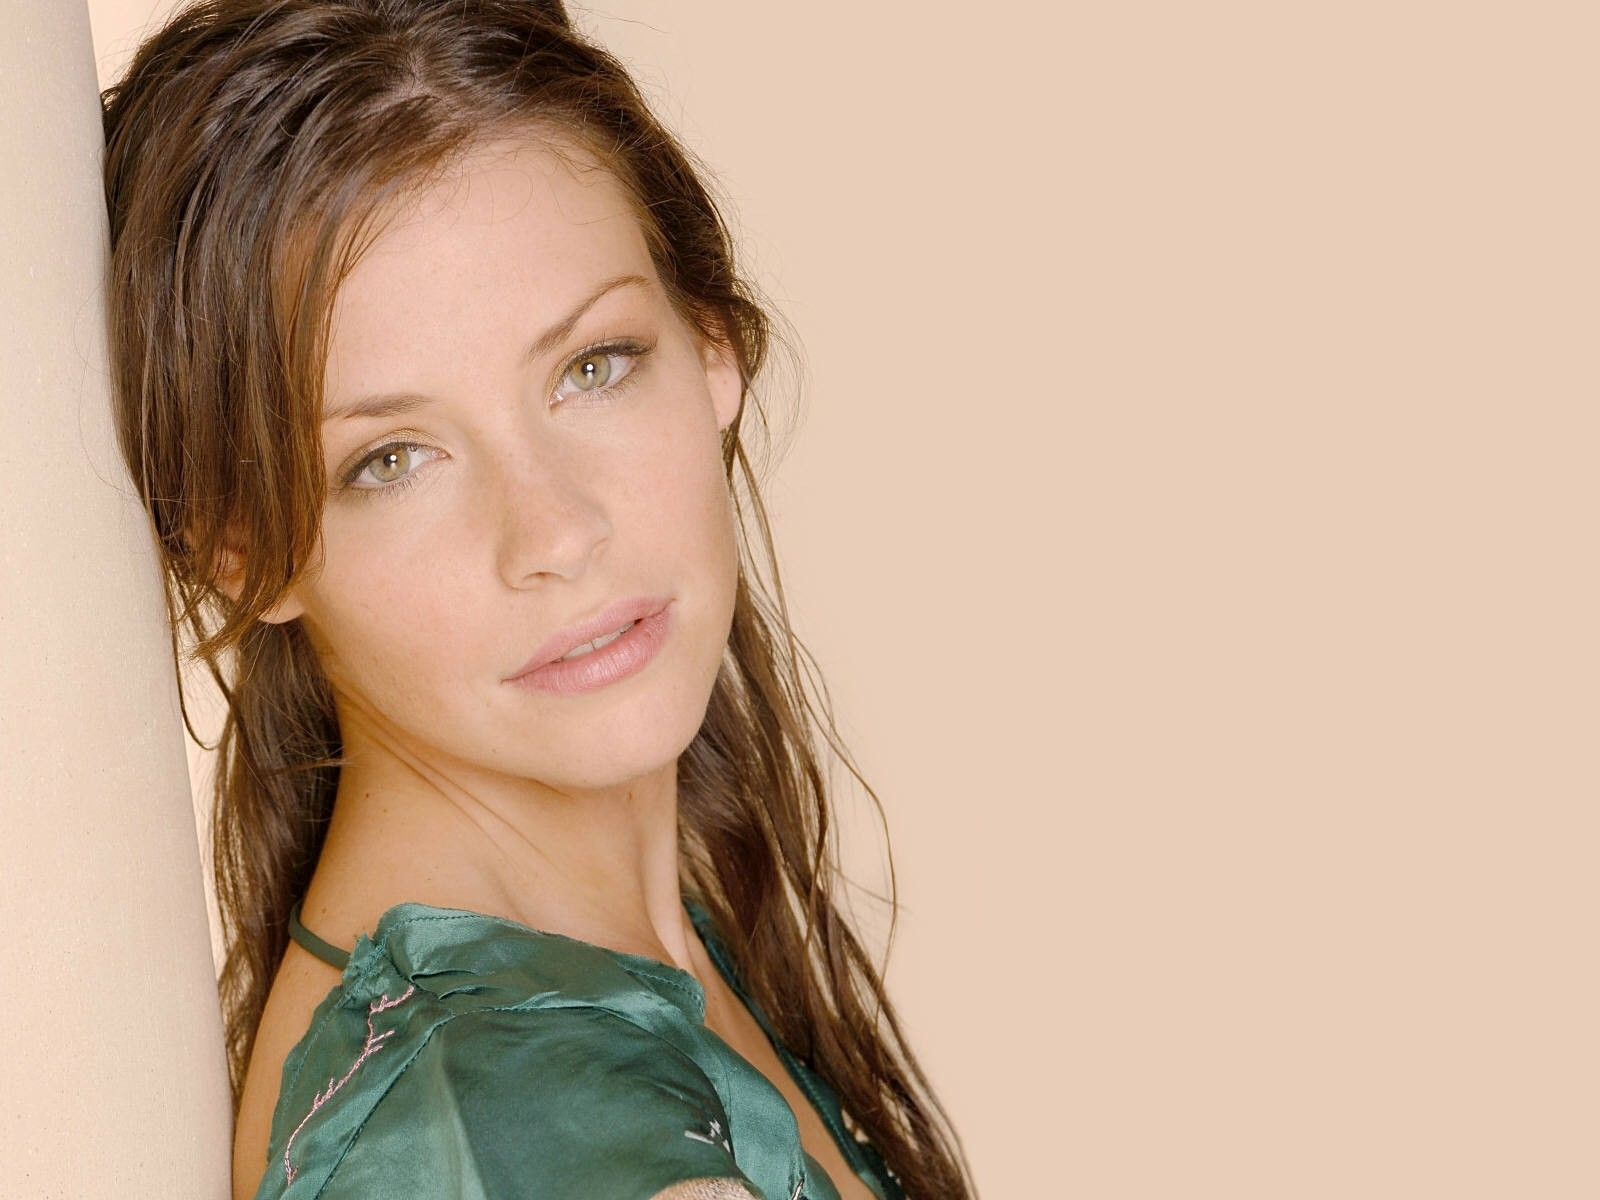 Wallpaper di Evangeline Lilly su fondo rosa